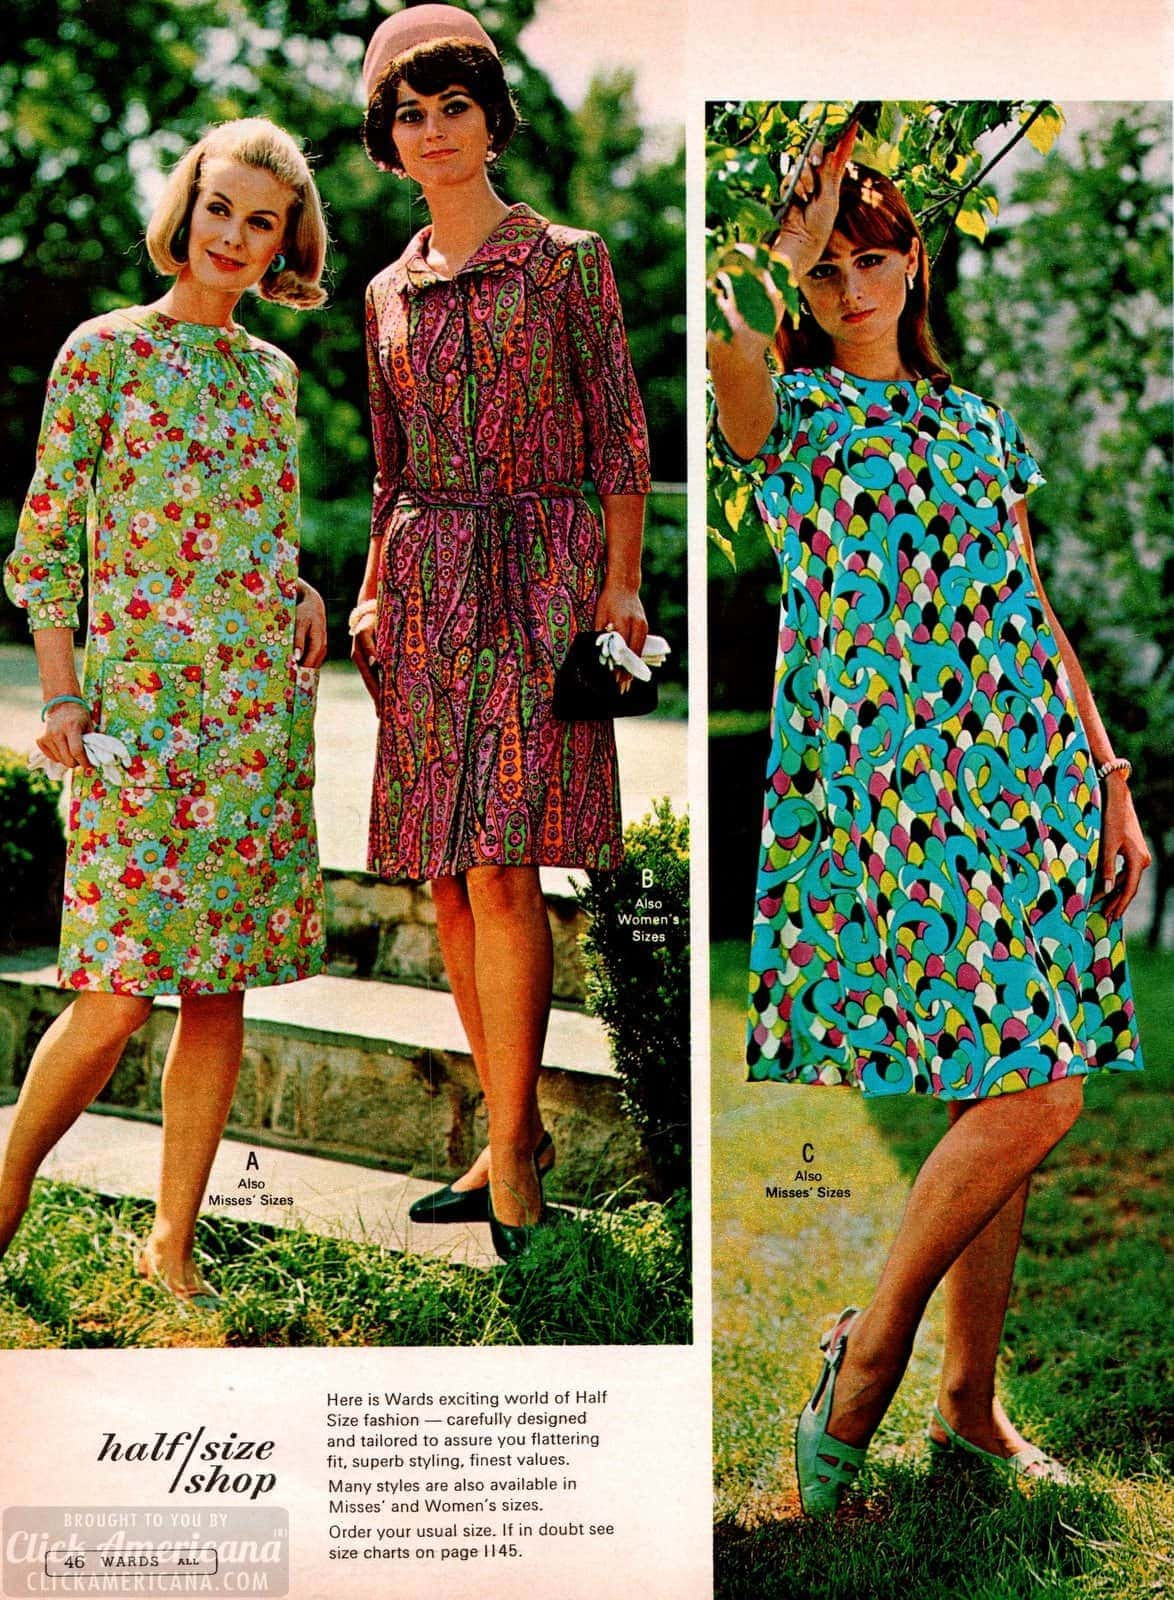 Bright and bold patterns on these super sixties-style dresses